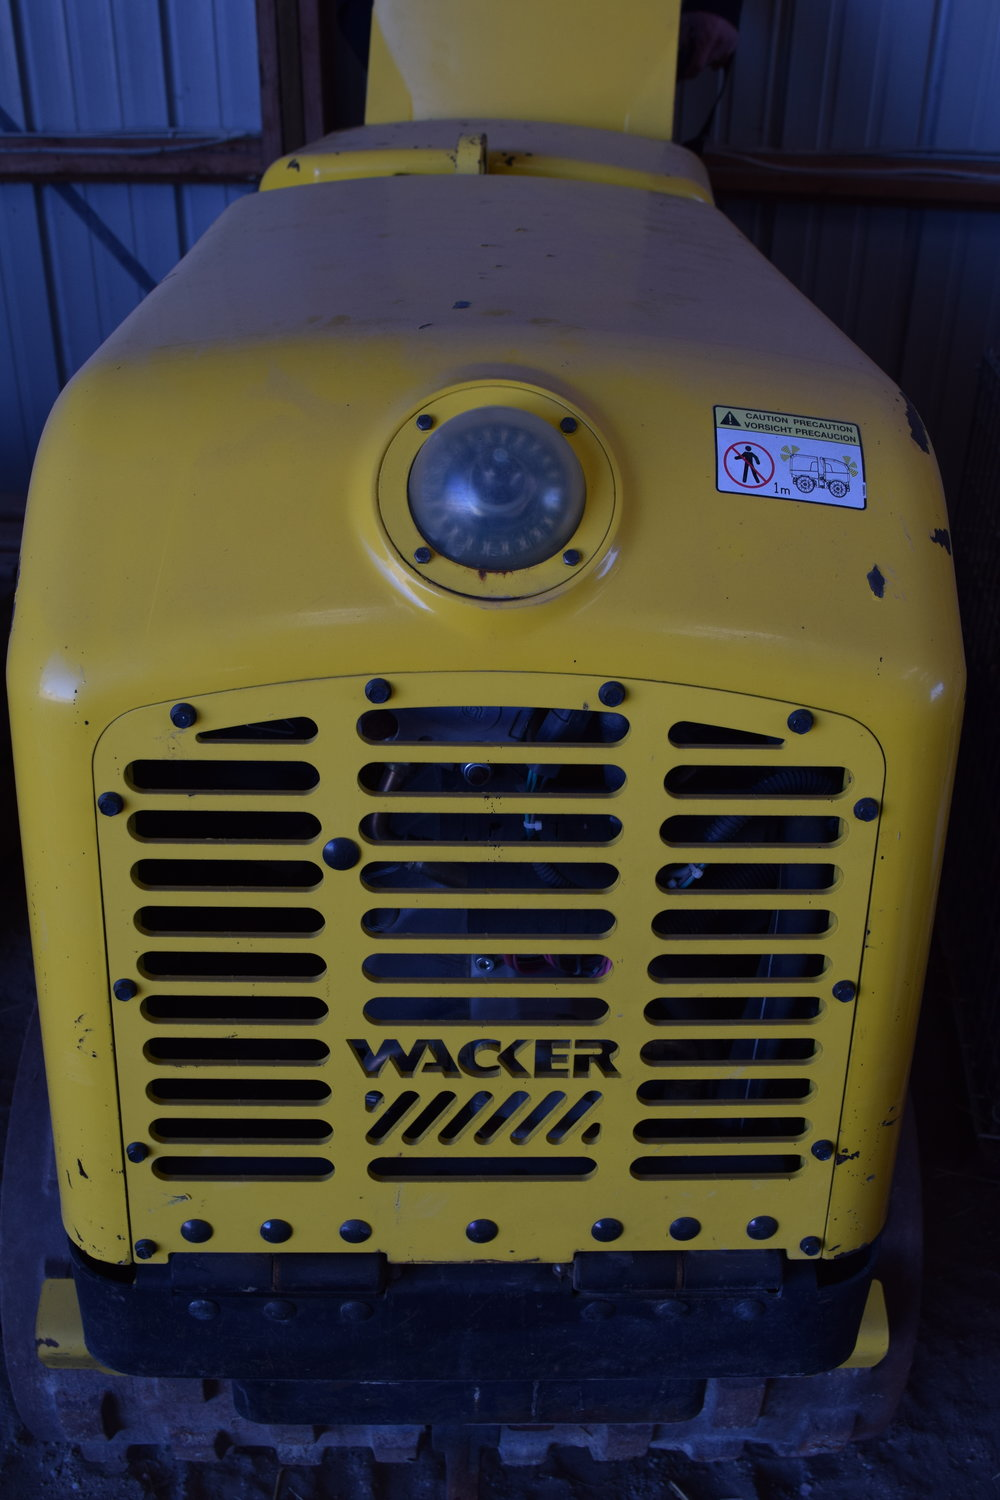 Wacker trench packer, vibrator, remote operated